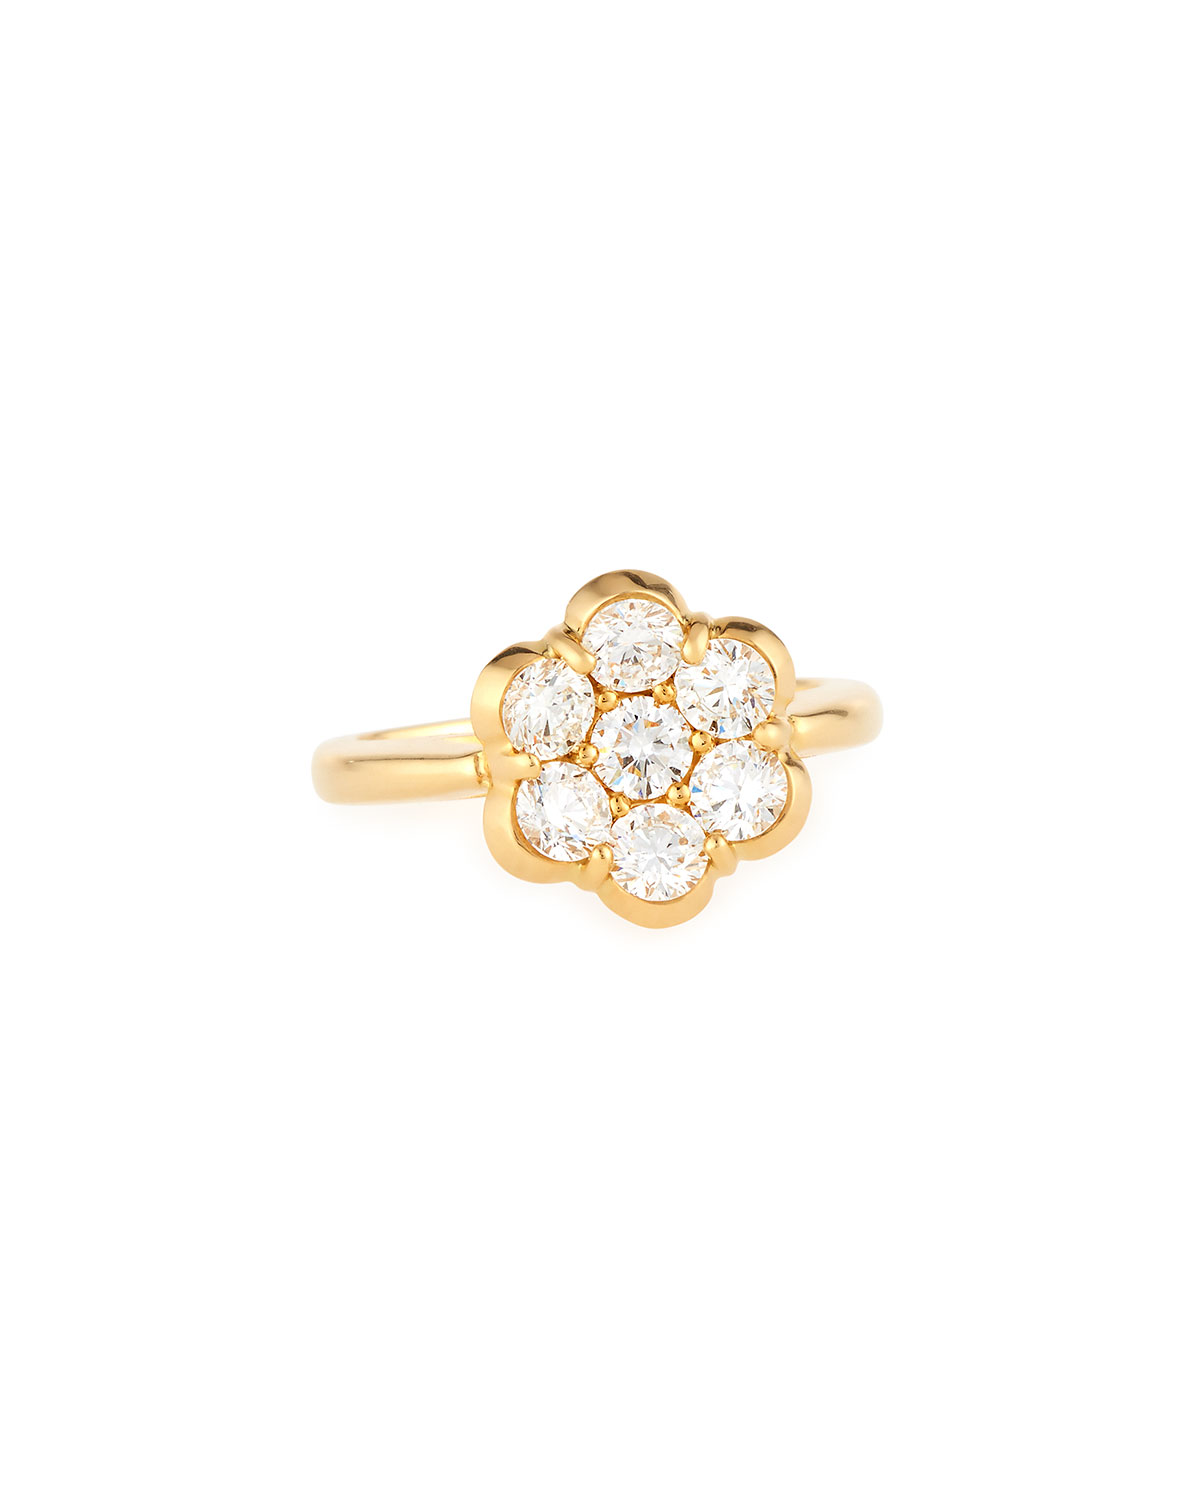 Bayco 18K Yellow Gold & Diamond Flower Ring Cm4xSq7